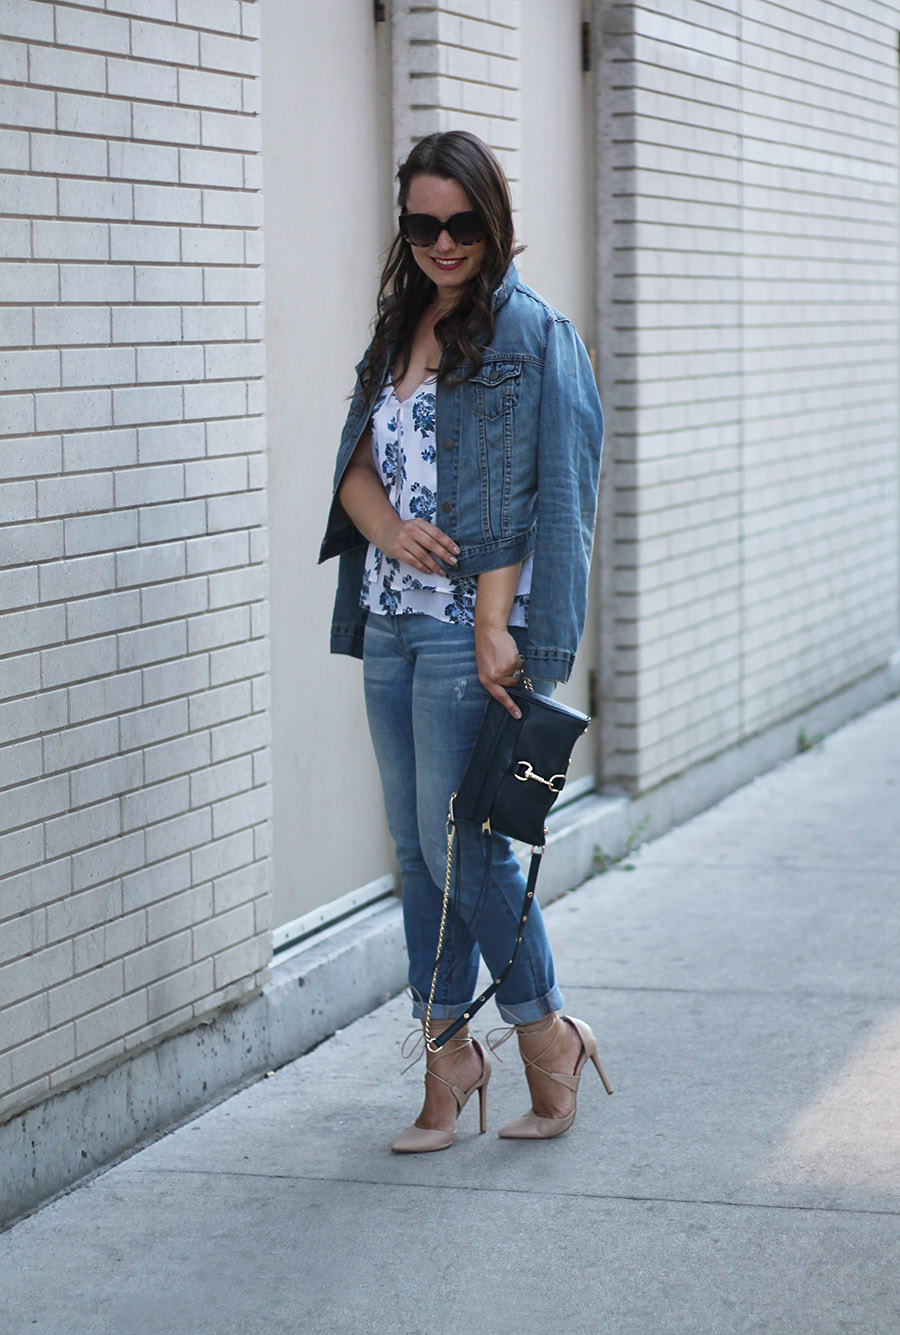 Outfit // The Canadian Tuxedo